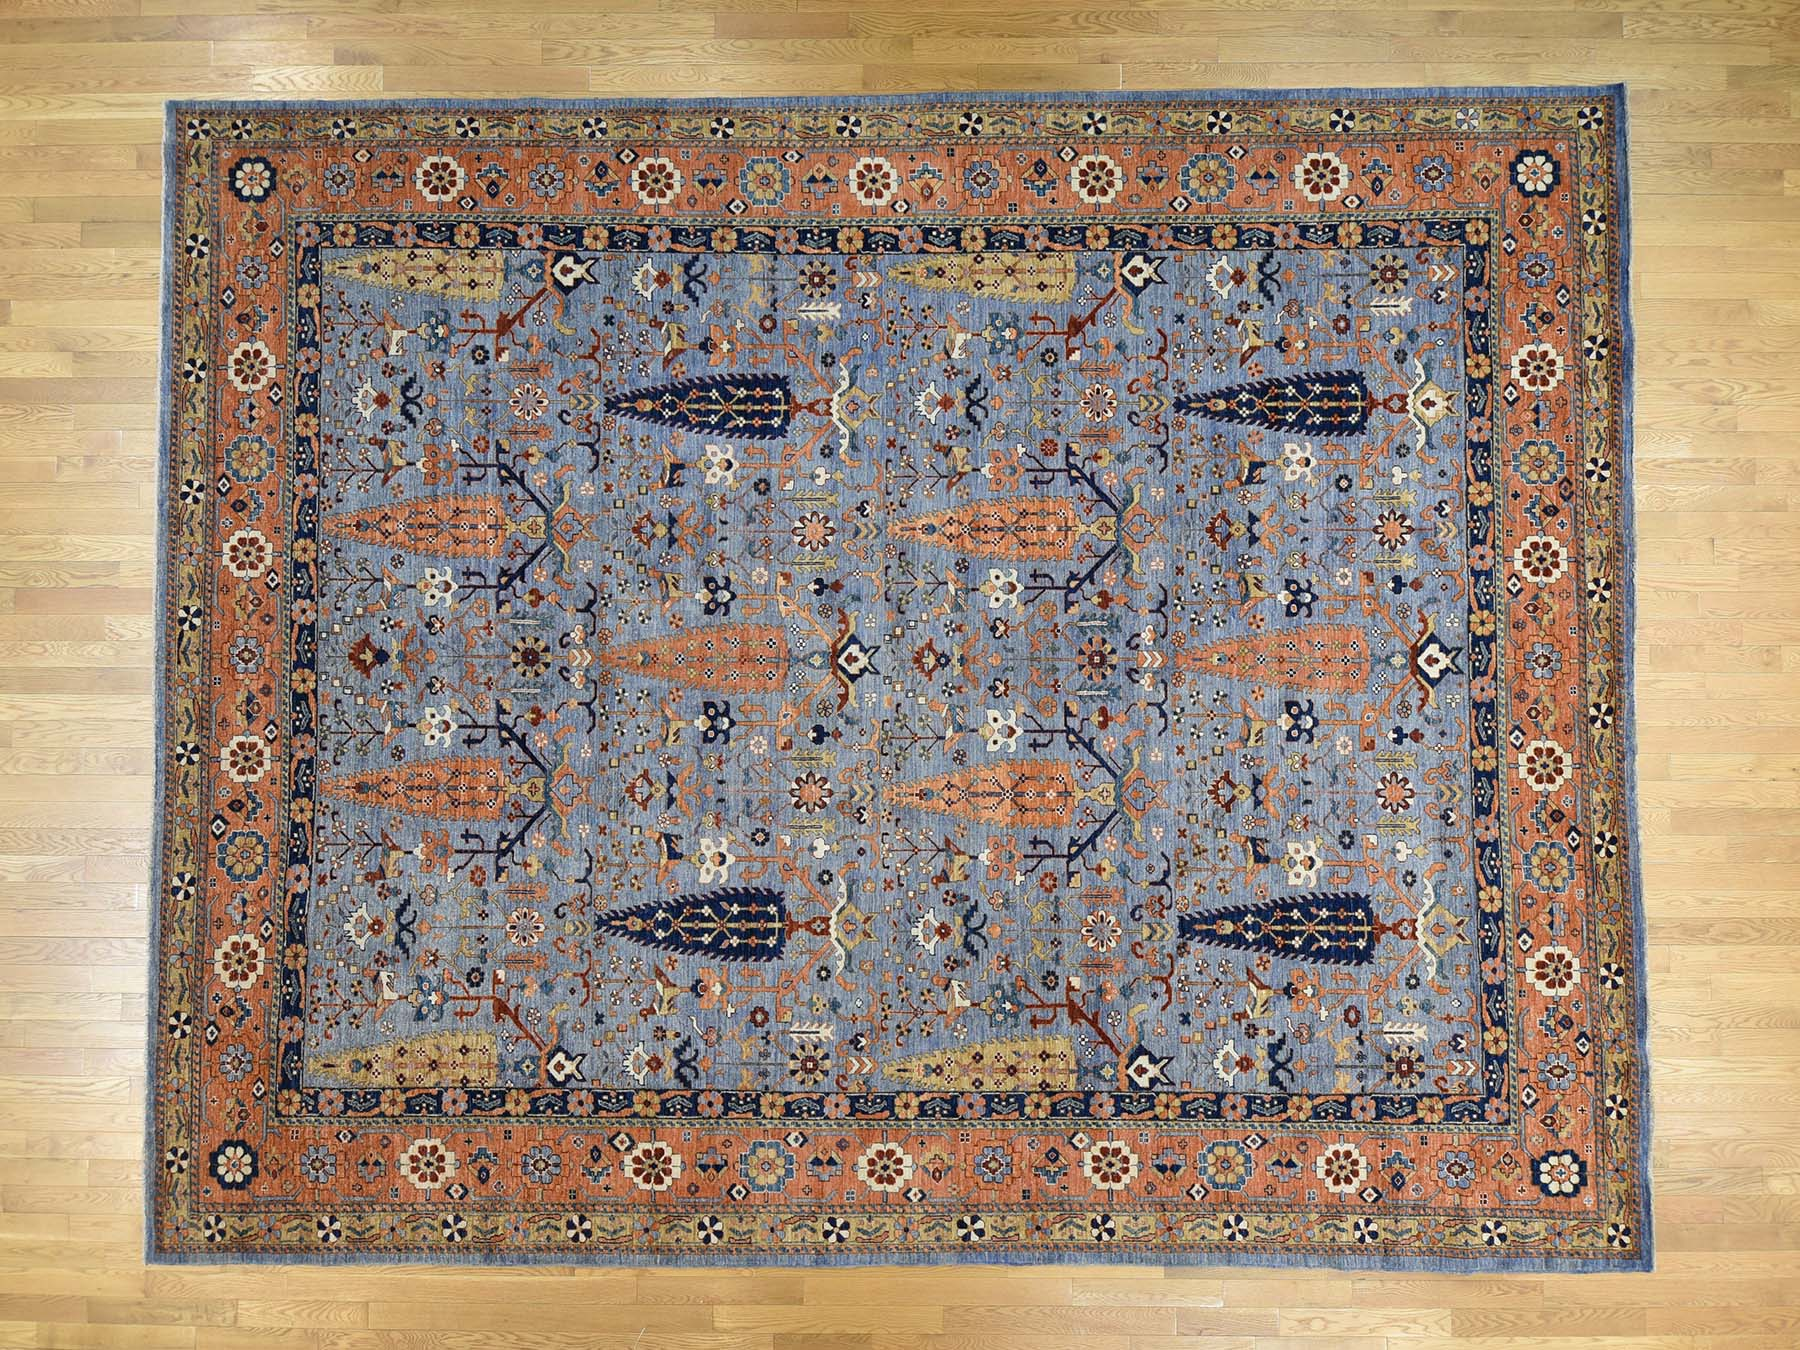 Transitional Wool Hand-Knotted Area Rug 11'10